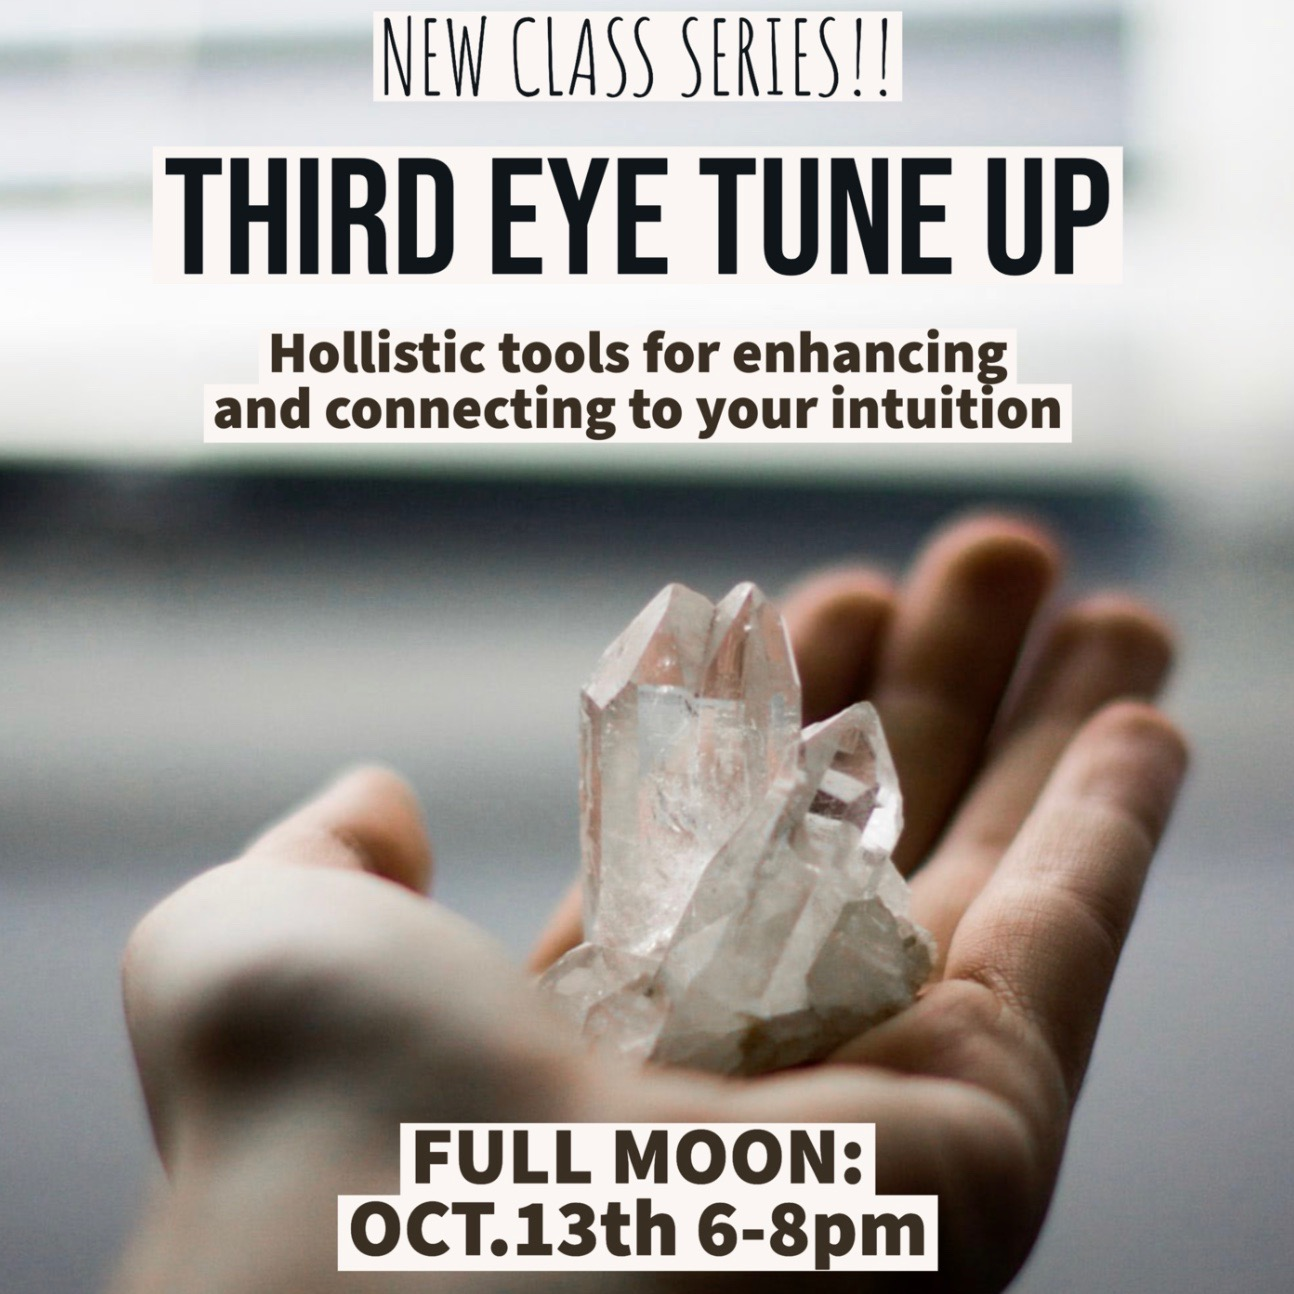 - Join Kristin of Senders Receive for a Full Moon 3rd Eye Tune-Up! An interactive workshop of mind-body-spirit practices to enhance the intuition, reconnect with your inner guidance and strengthen self-trust.Click here to register online.Call us at 512-963-2323 to register by phone.